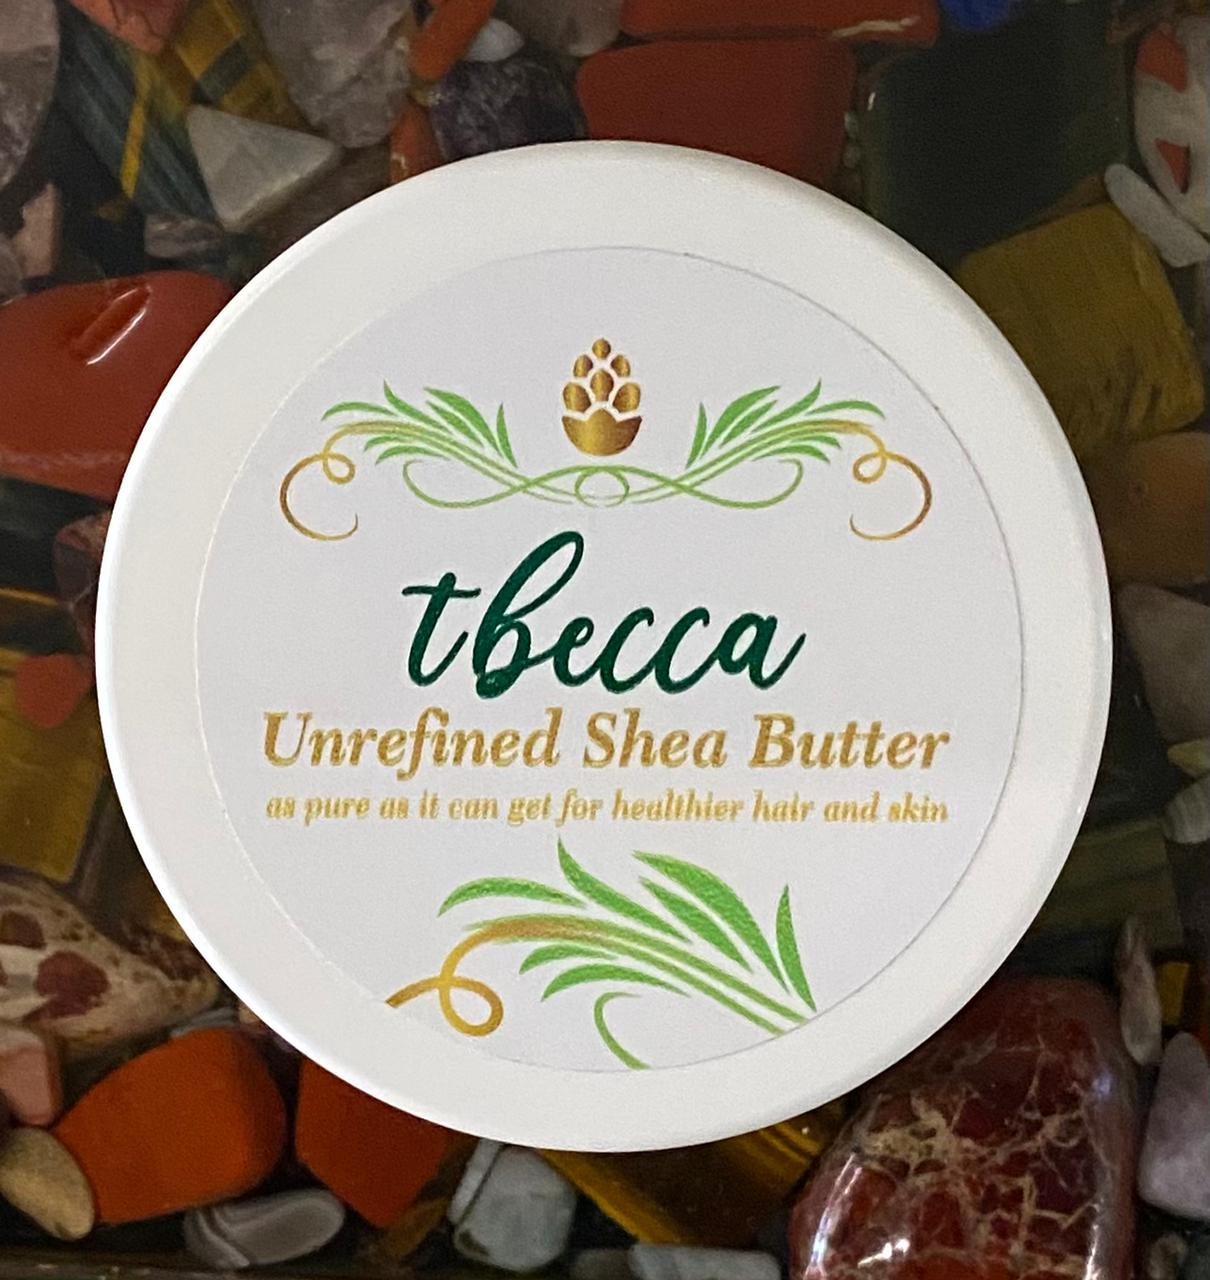 tbecca Unrefined shea butter 250g